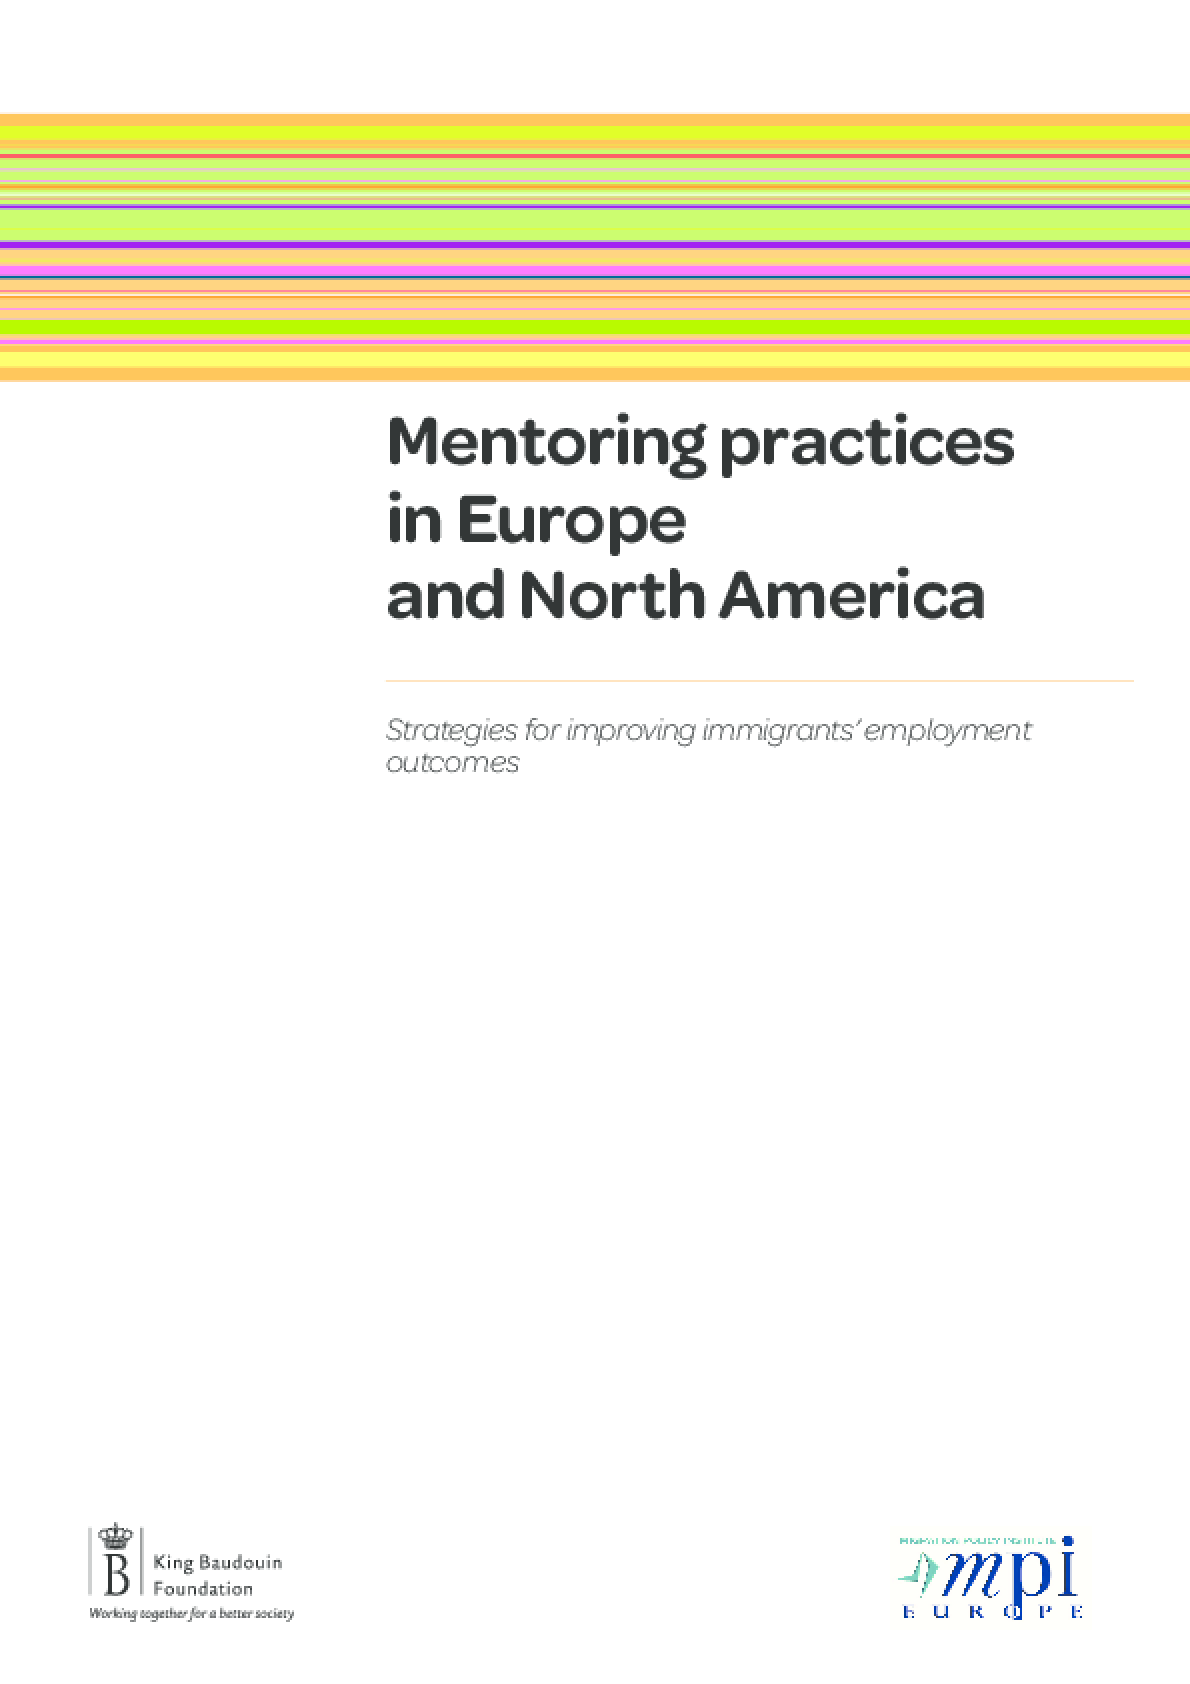 Mentoring Practices in Europe and North America: Strategies for Improving Immigrants' Employment Outcomes